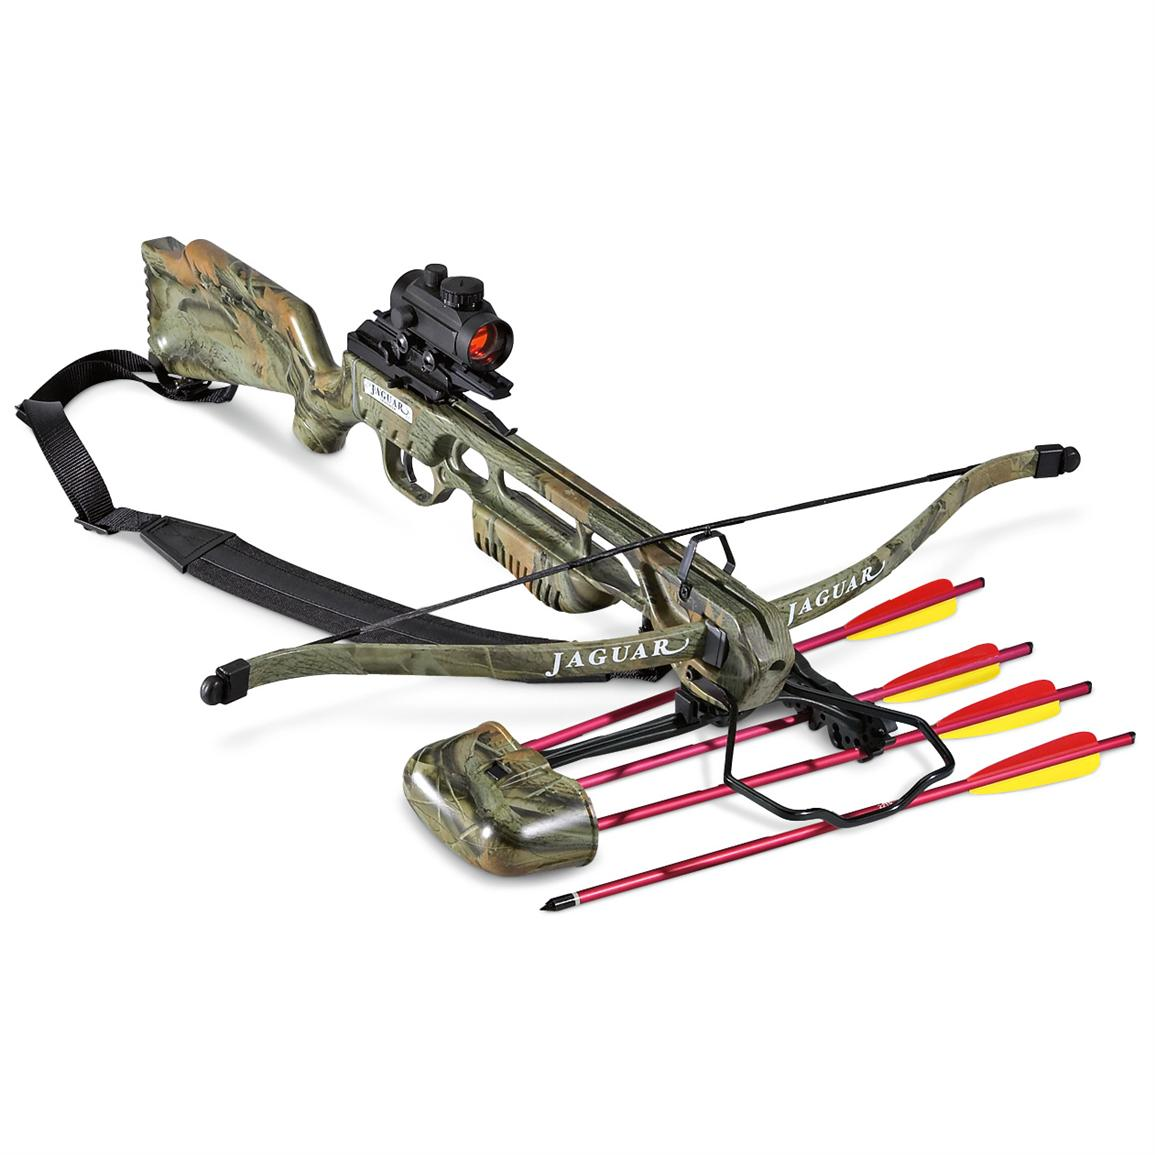 Jaguar 175-lb  Crossbow Package - 157196, Crossbows at